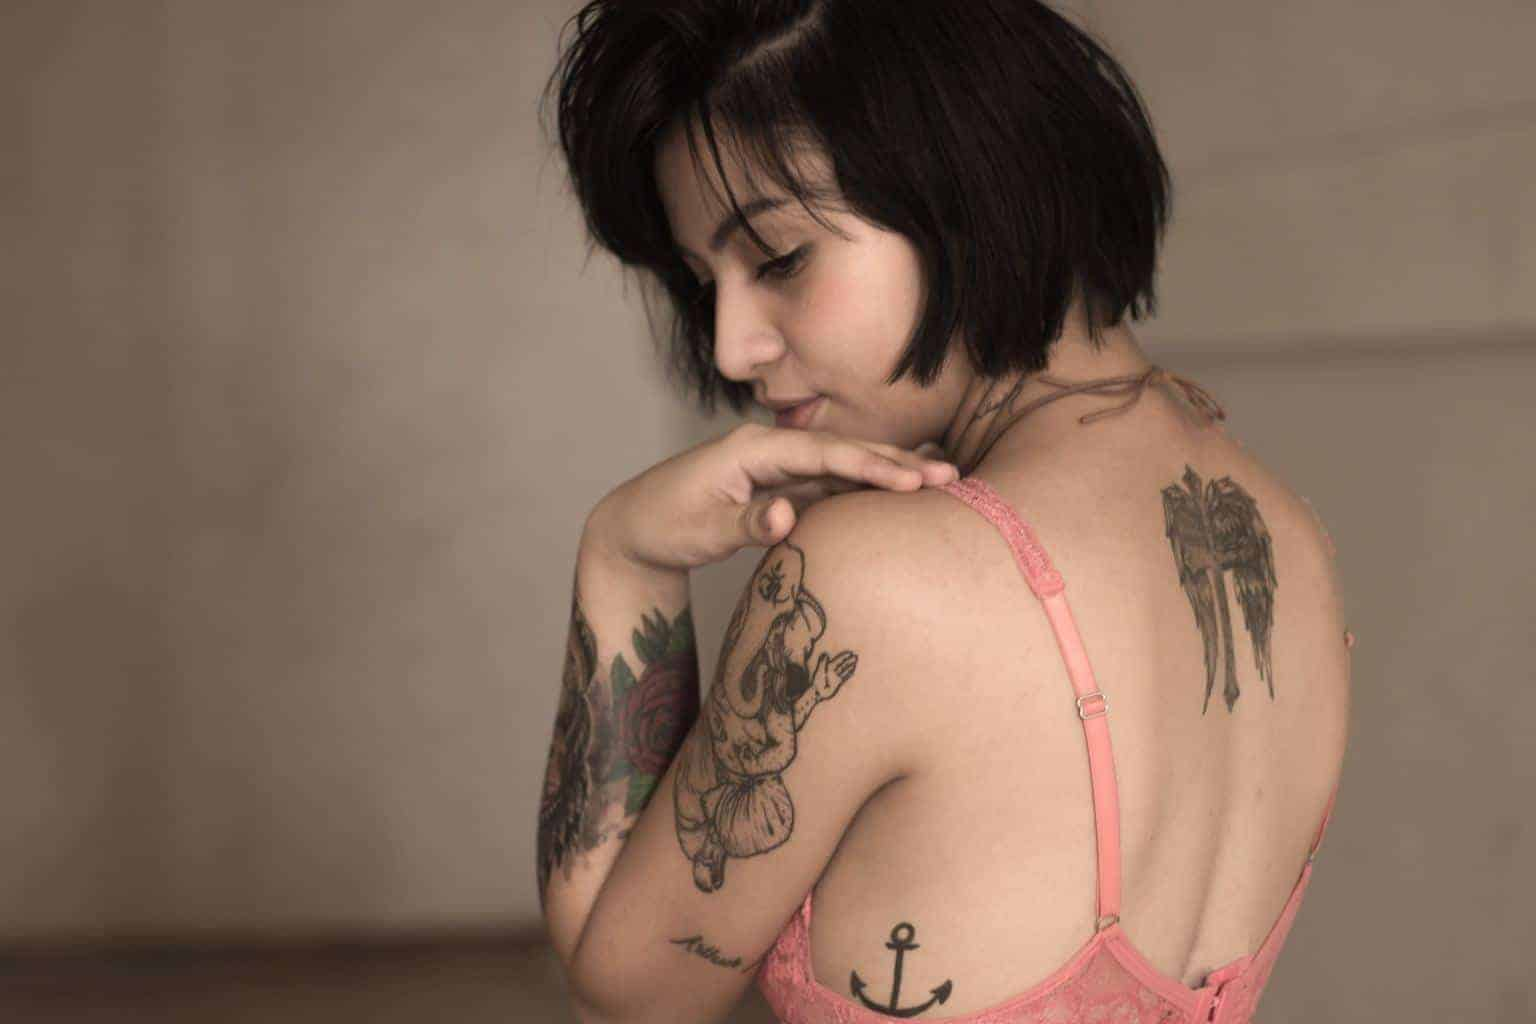 Dark haired woman in a pink bra looks over her shoulder